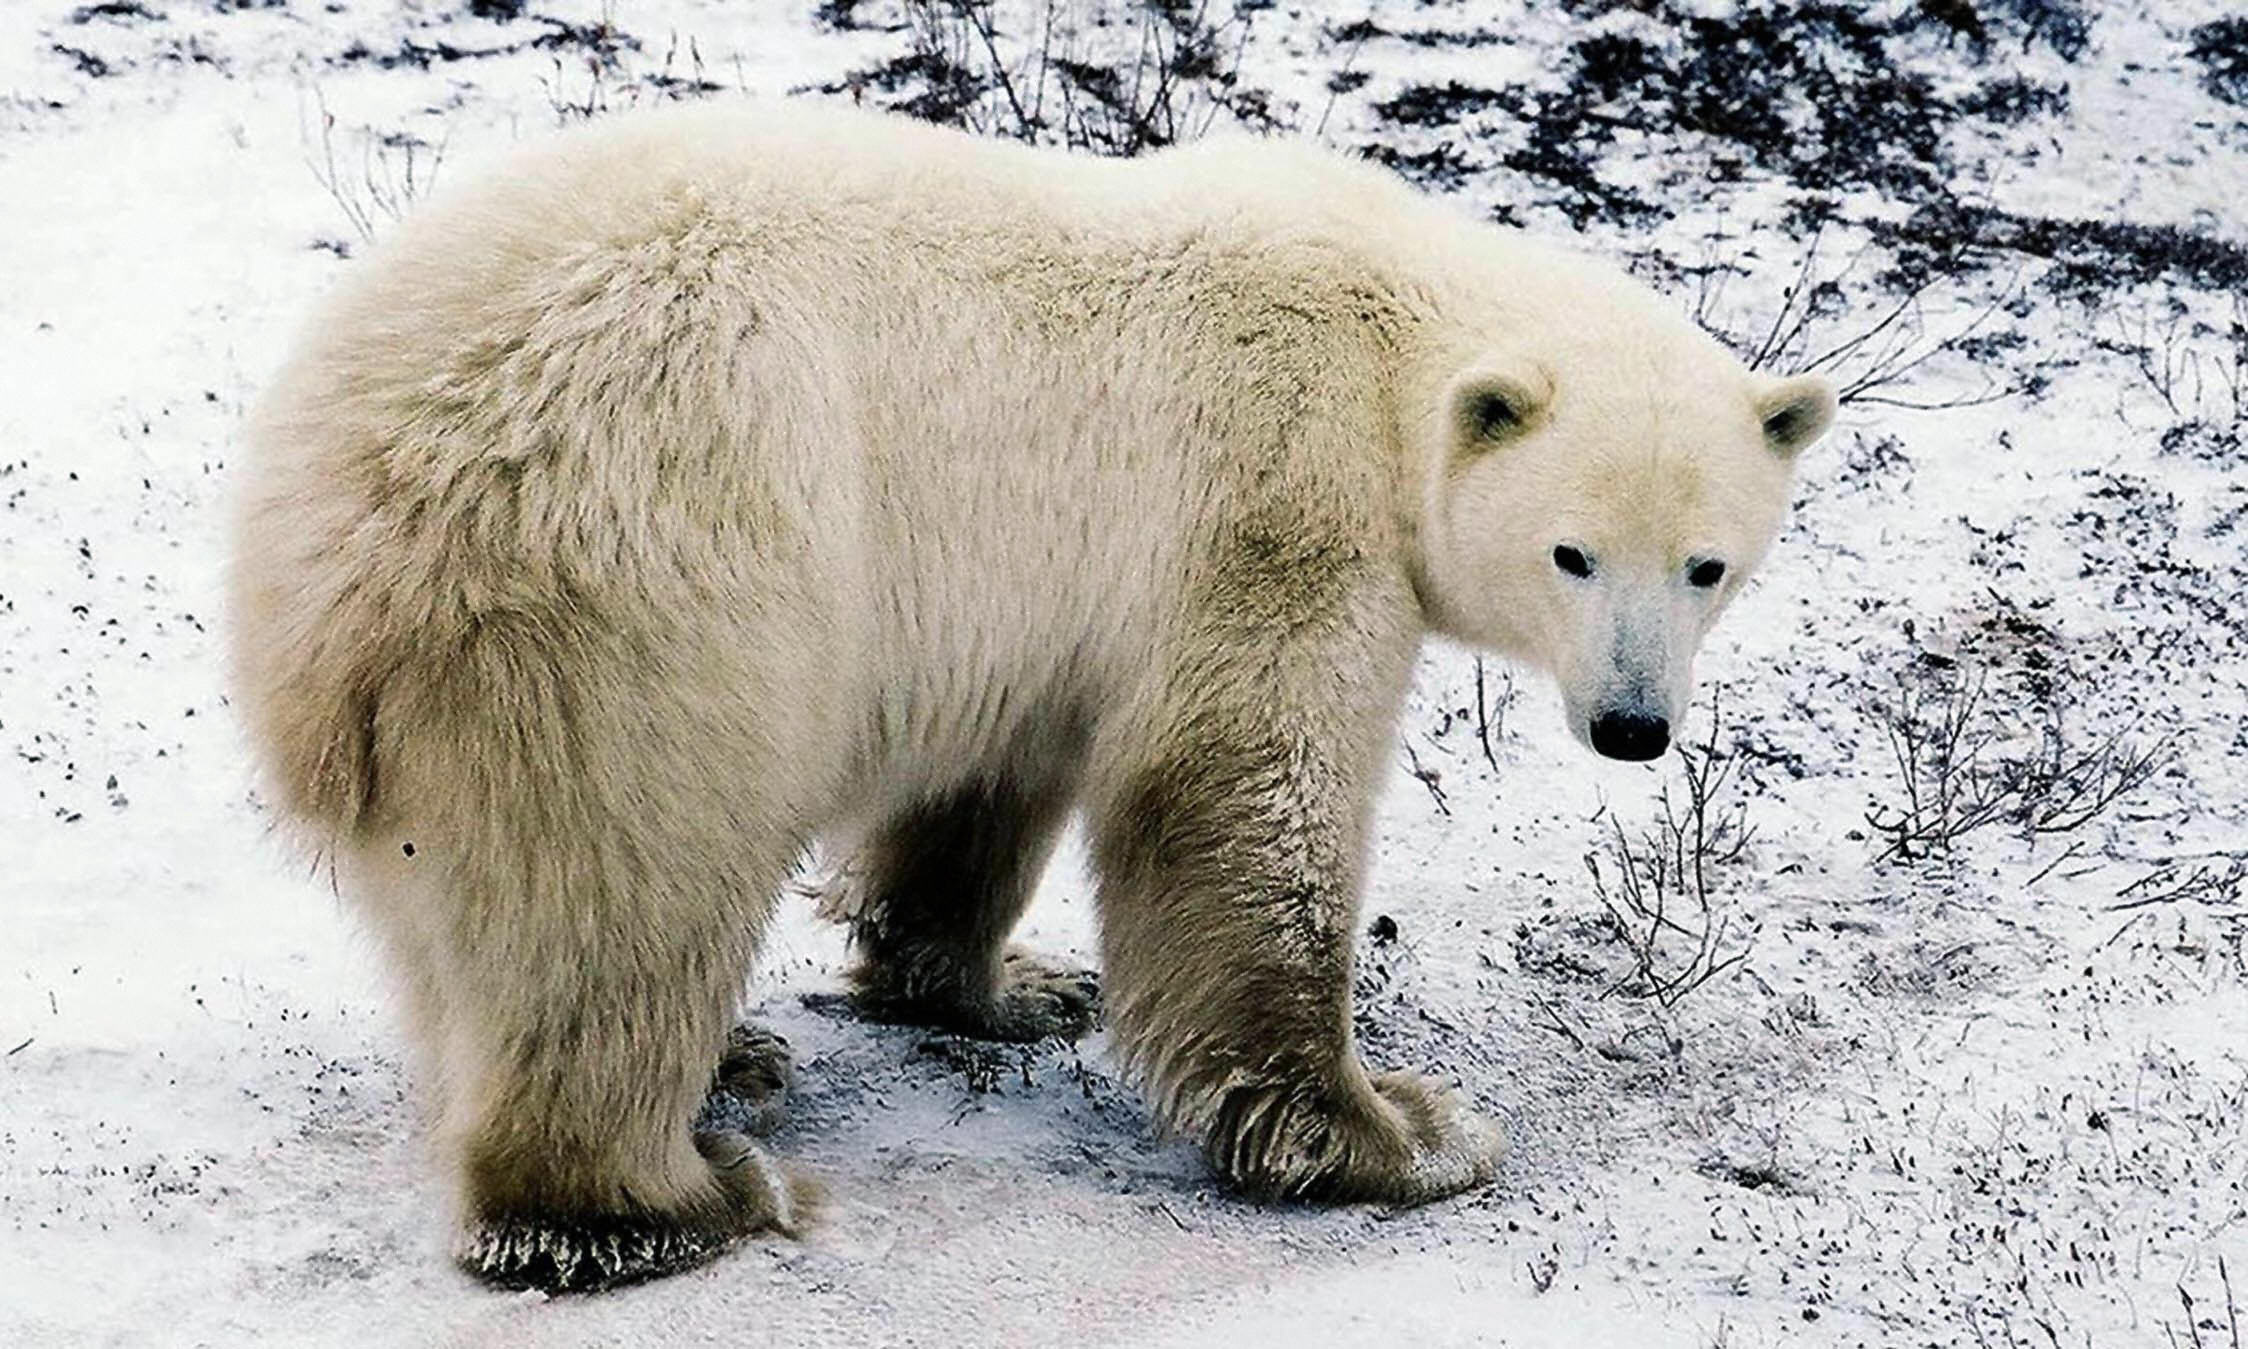 A polar bear is seen in a file photo. (Credit: GUY CLAVEL/AFP/Getty Images)